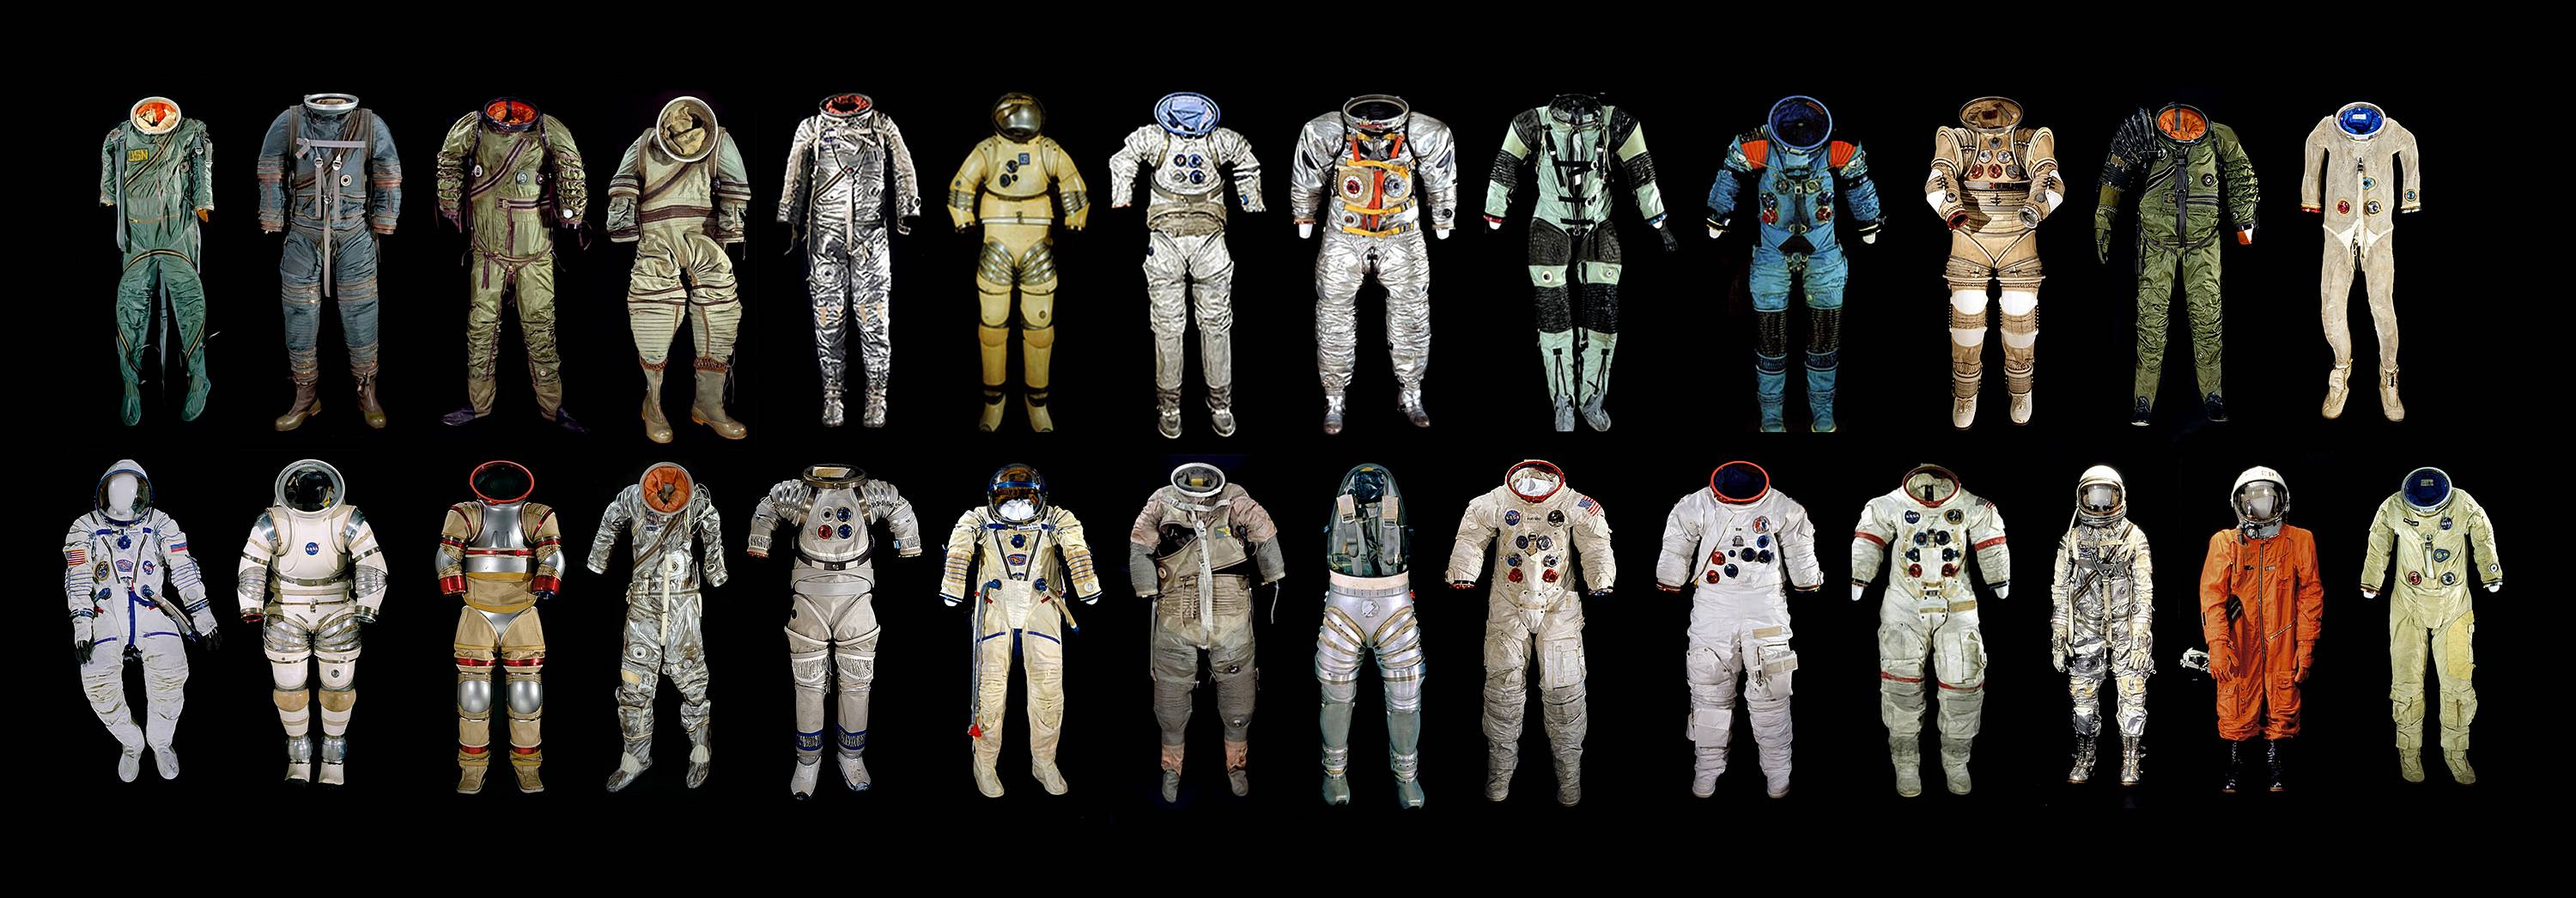 Space fashion collection